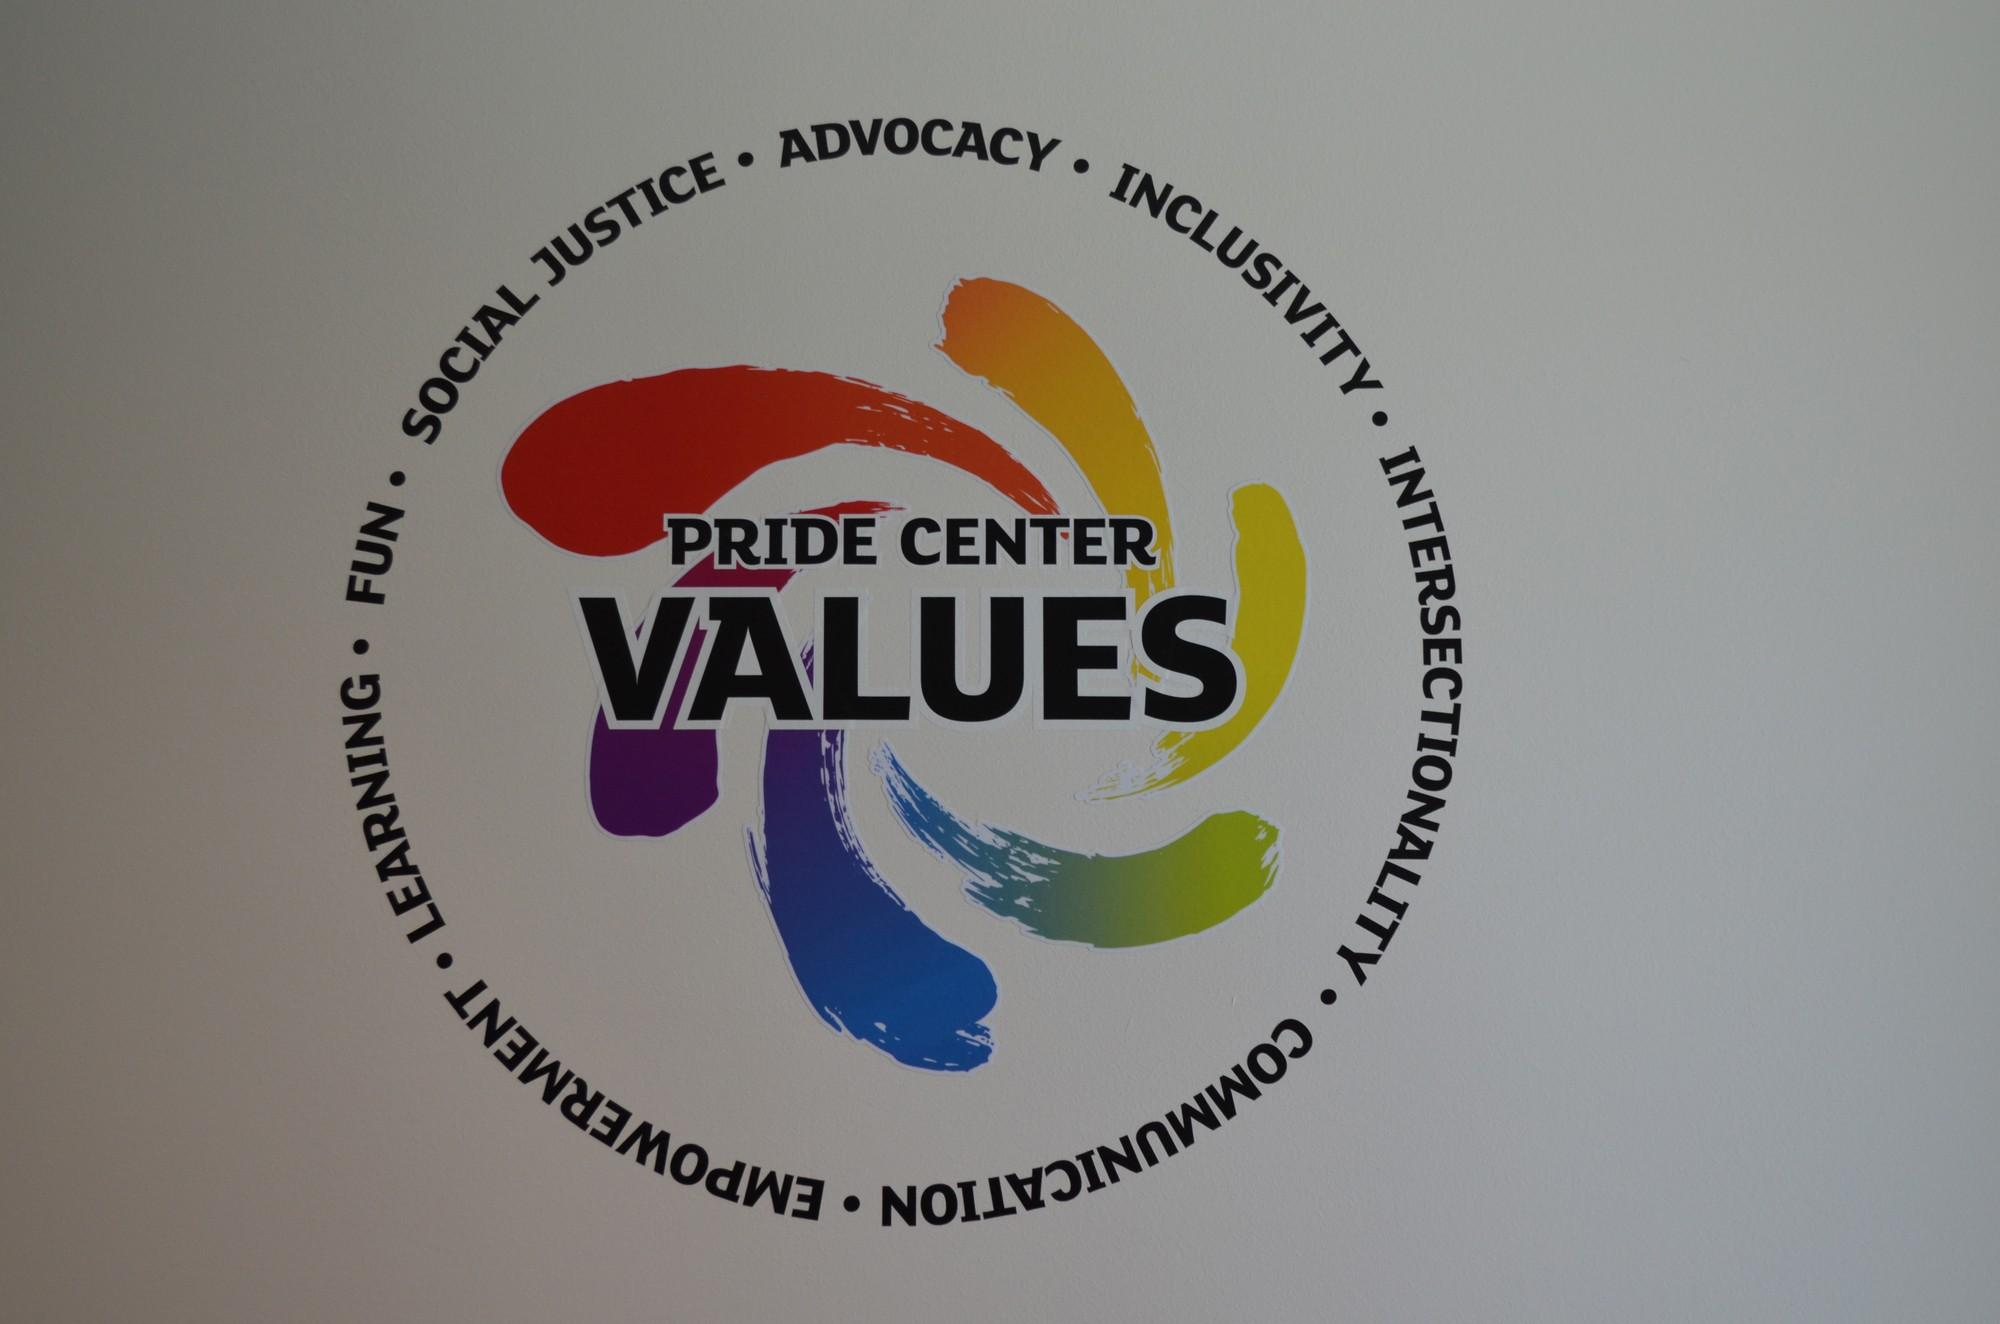 Color printing csun - The Pride Center S Logo And Values Add A Splash Of Color To The White Wall It Rests On The Rainbow Motif Became A Symbol Of The Lgbt Community In The Late